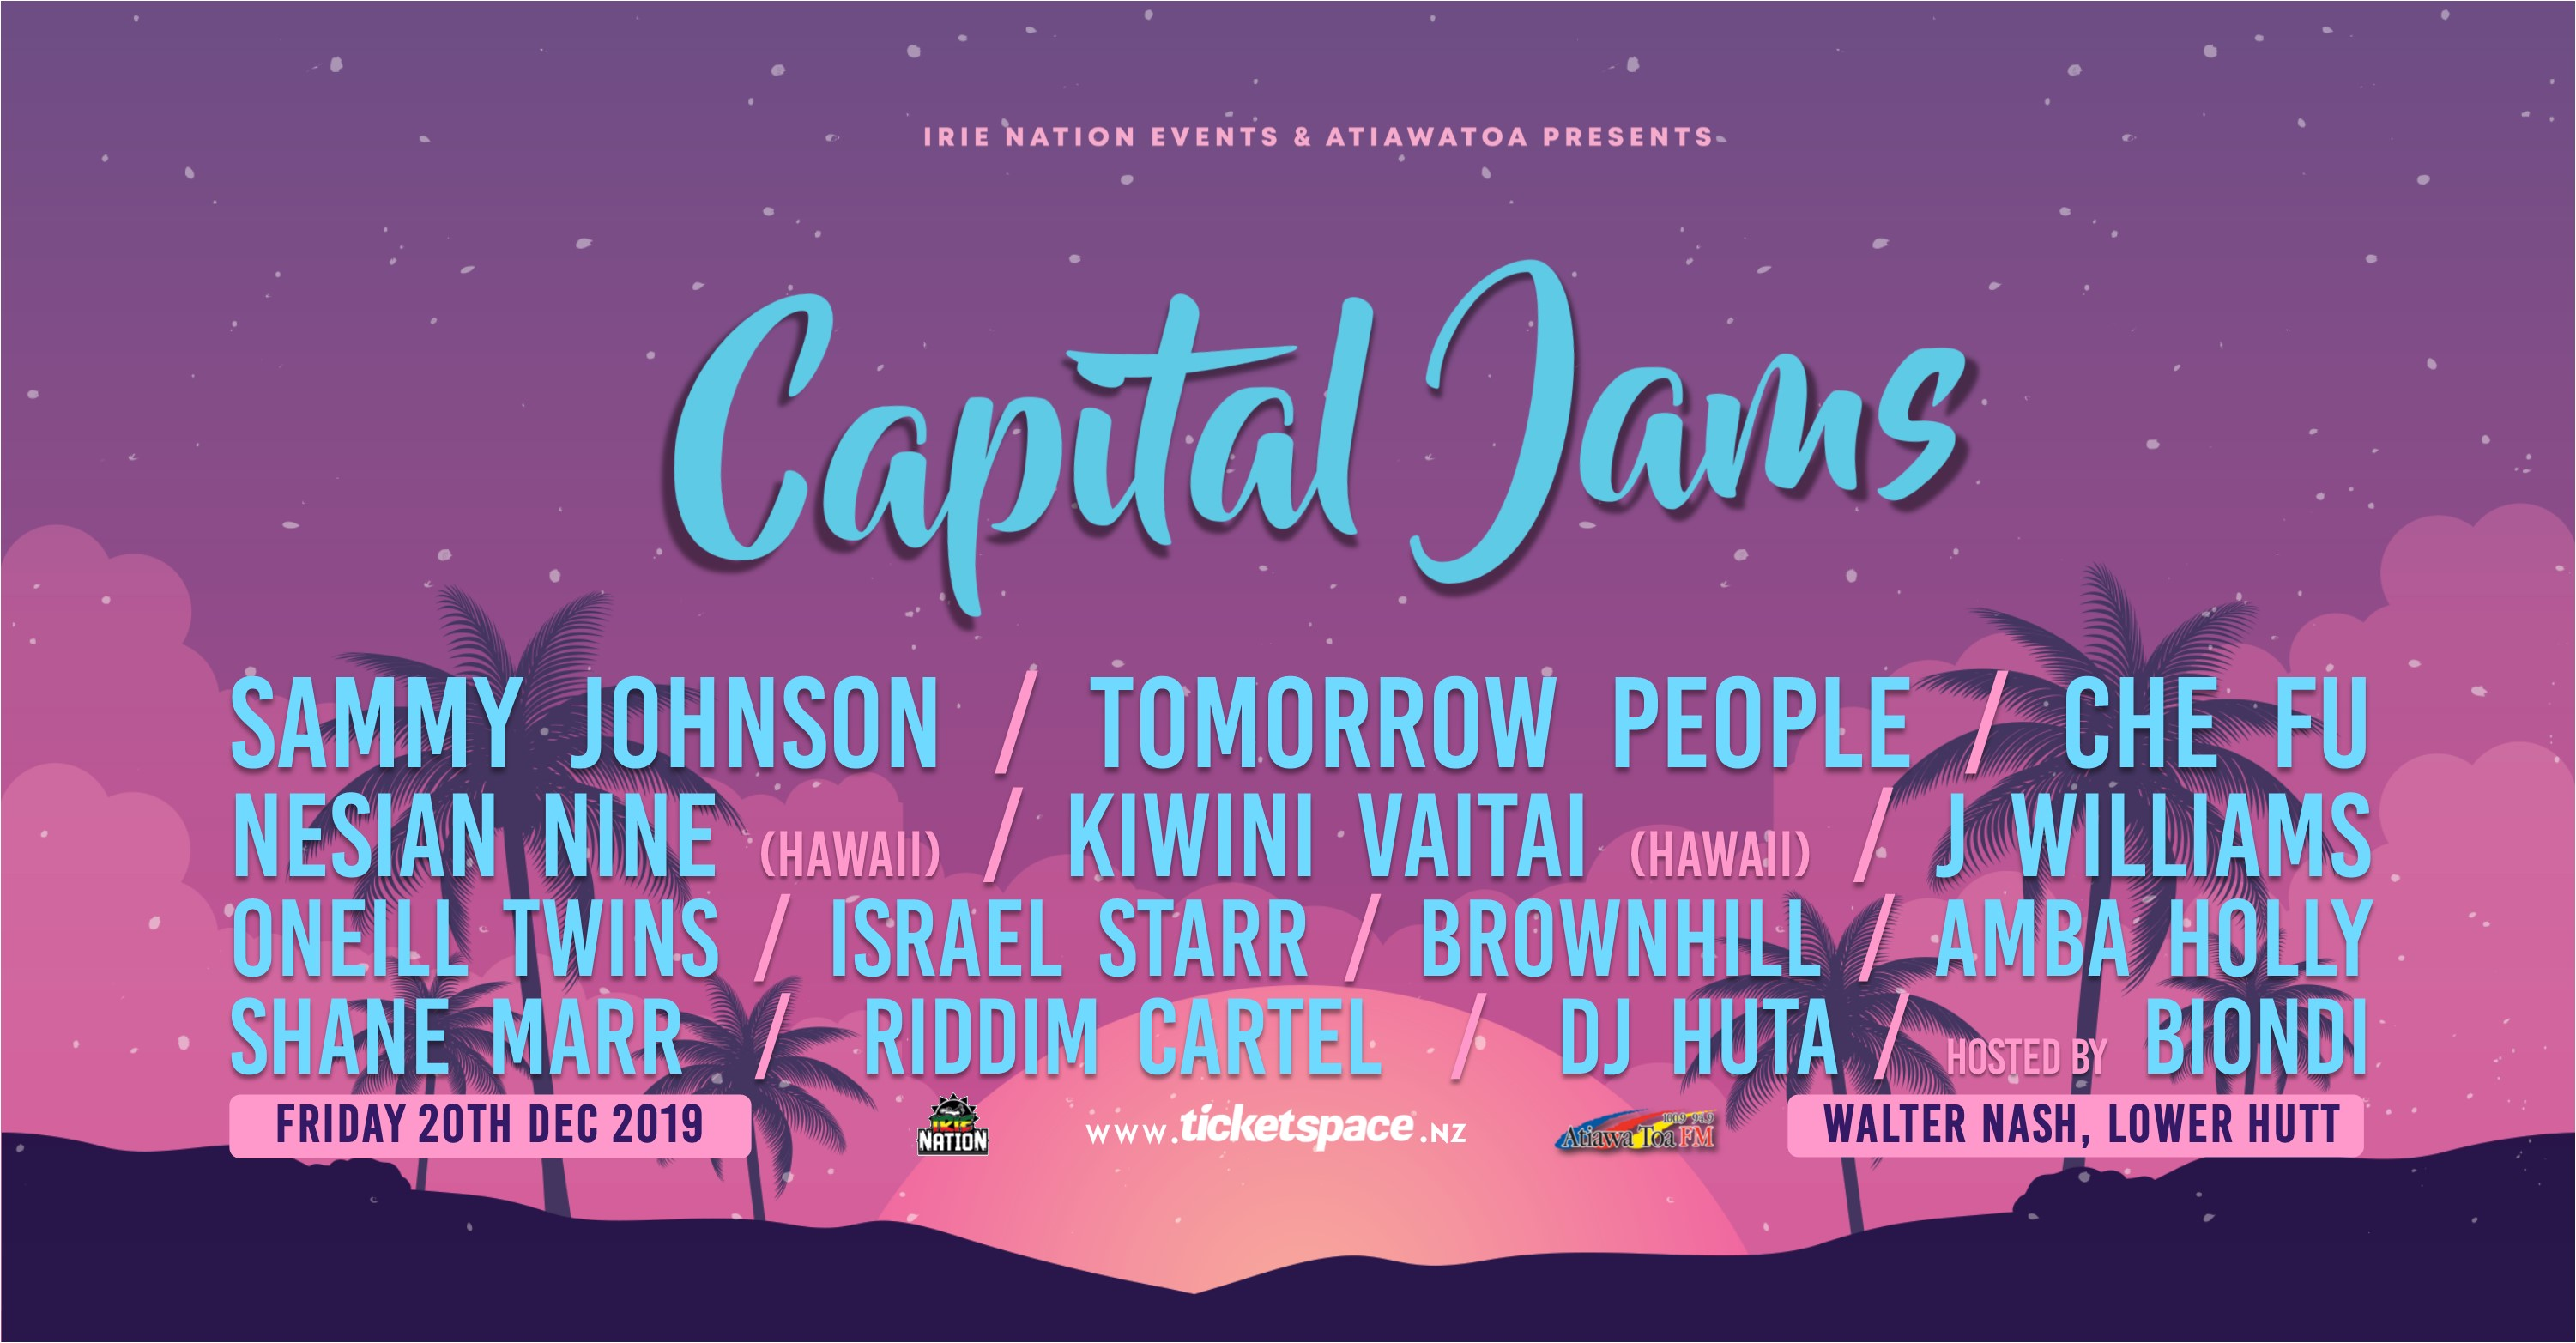 Tickets for CAPITAL JAMS - Wellington in Lower Hutt from Ticketspace